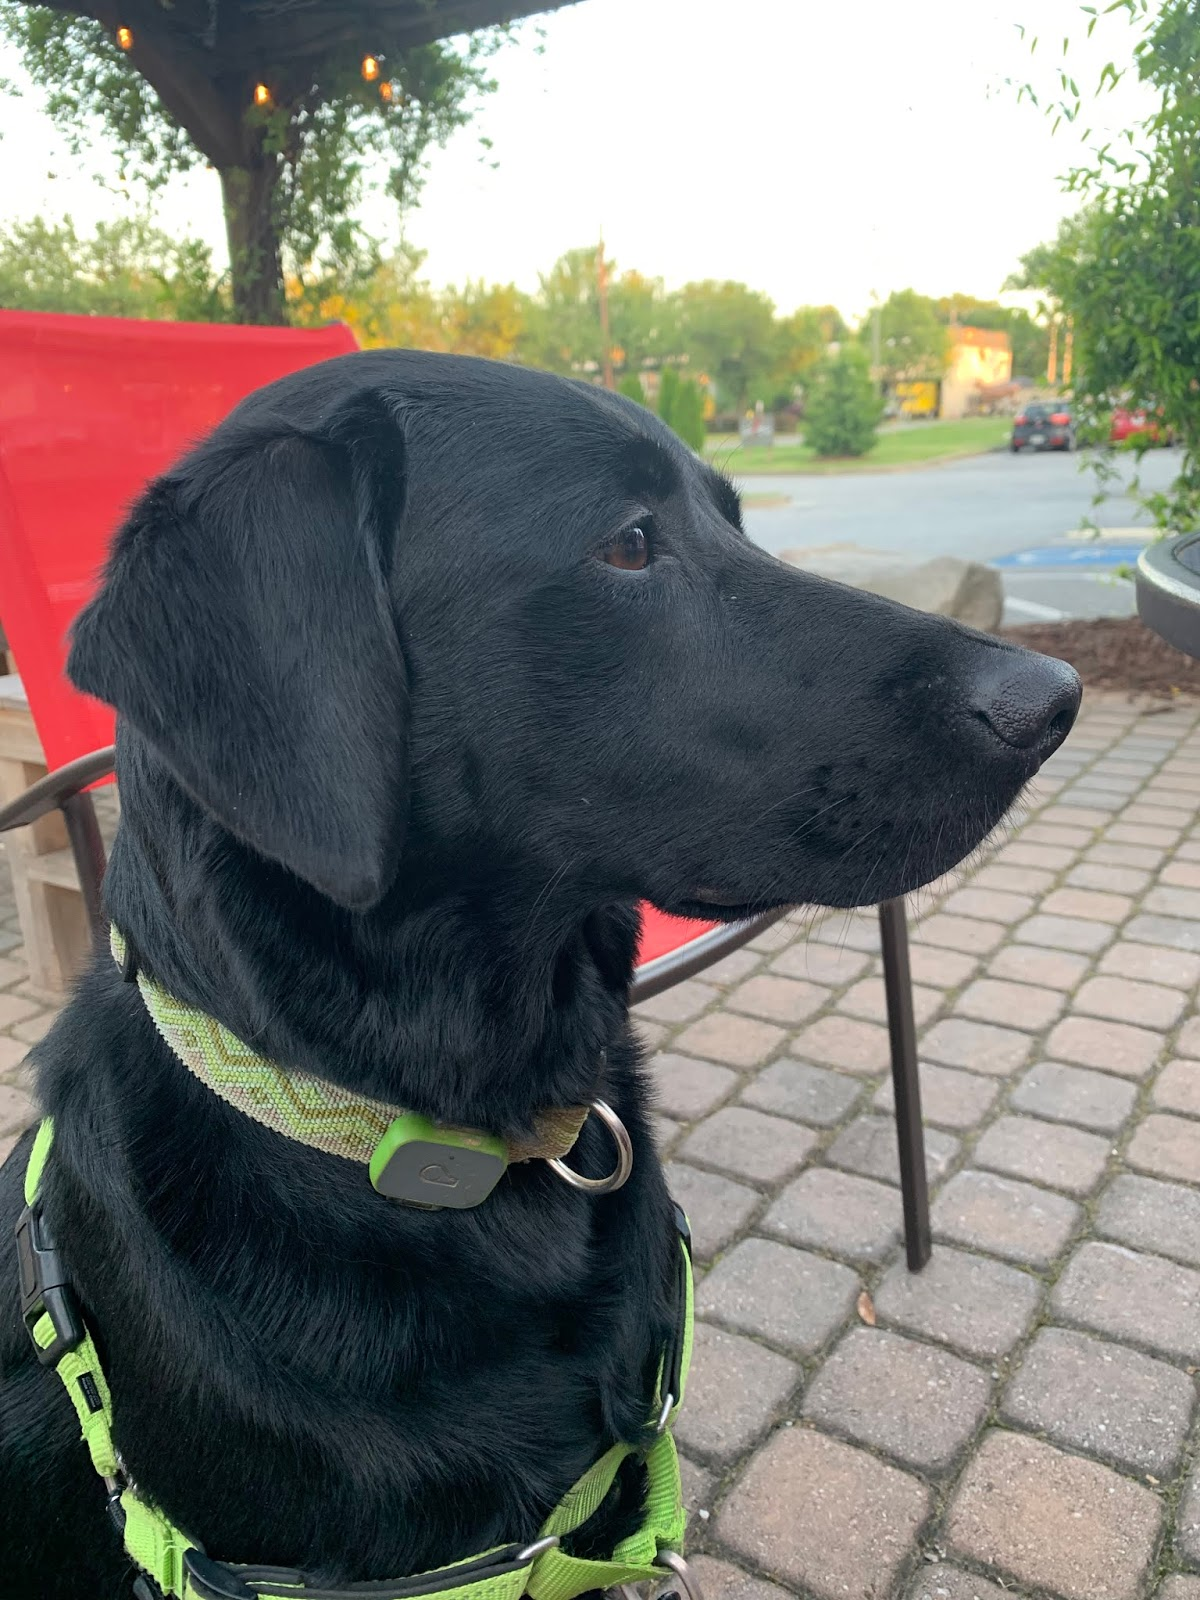 Albus, a black lab, stares thoughtfully into the distance